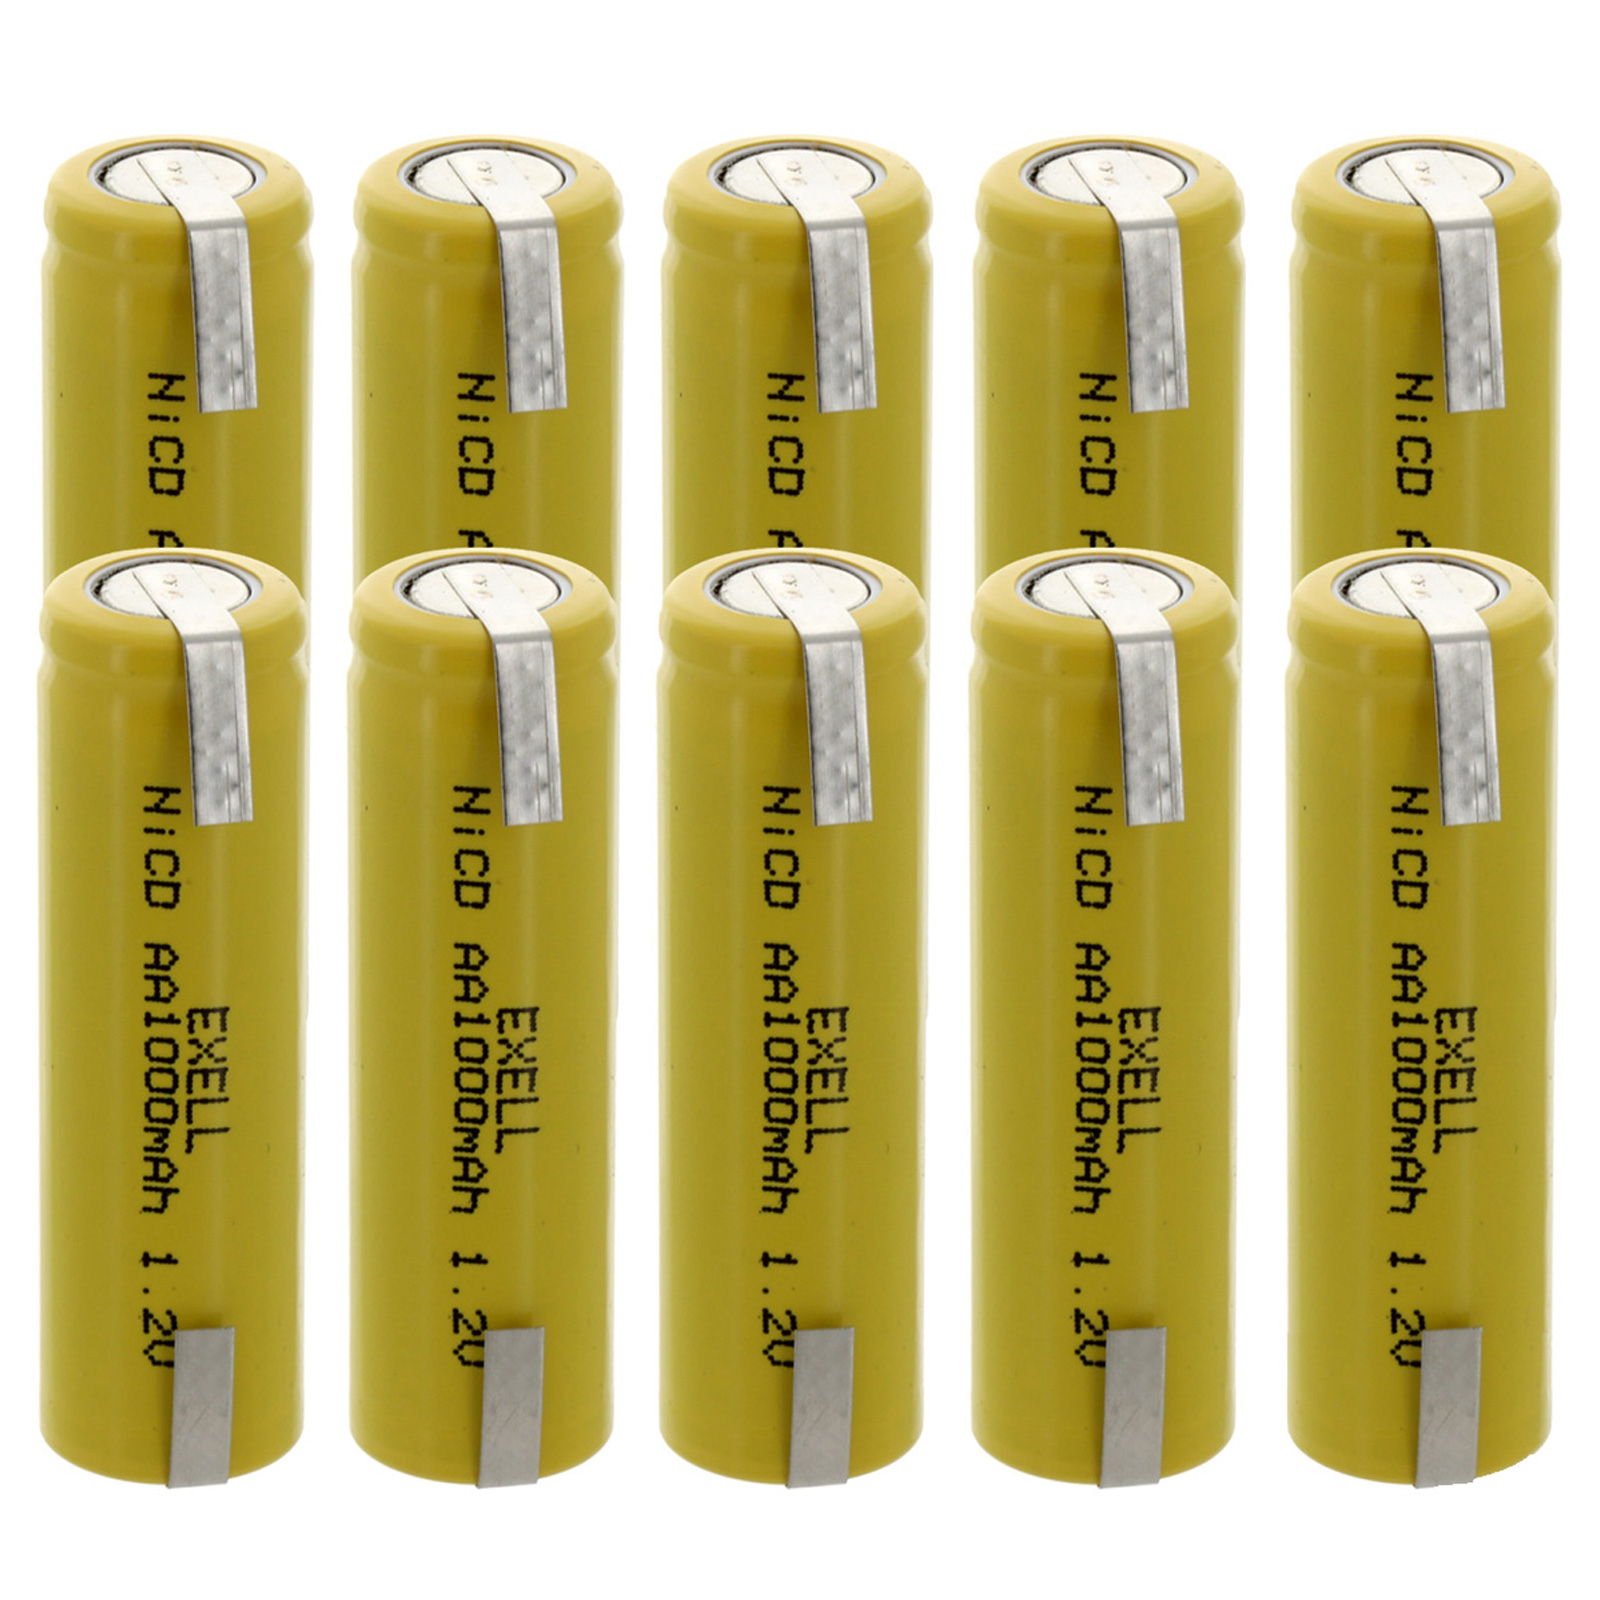 10x Exell AA 1.2V 1000mAh NiCD Rechargeable Batteries with Tabs FAST USA SHIP